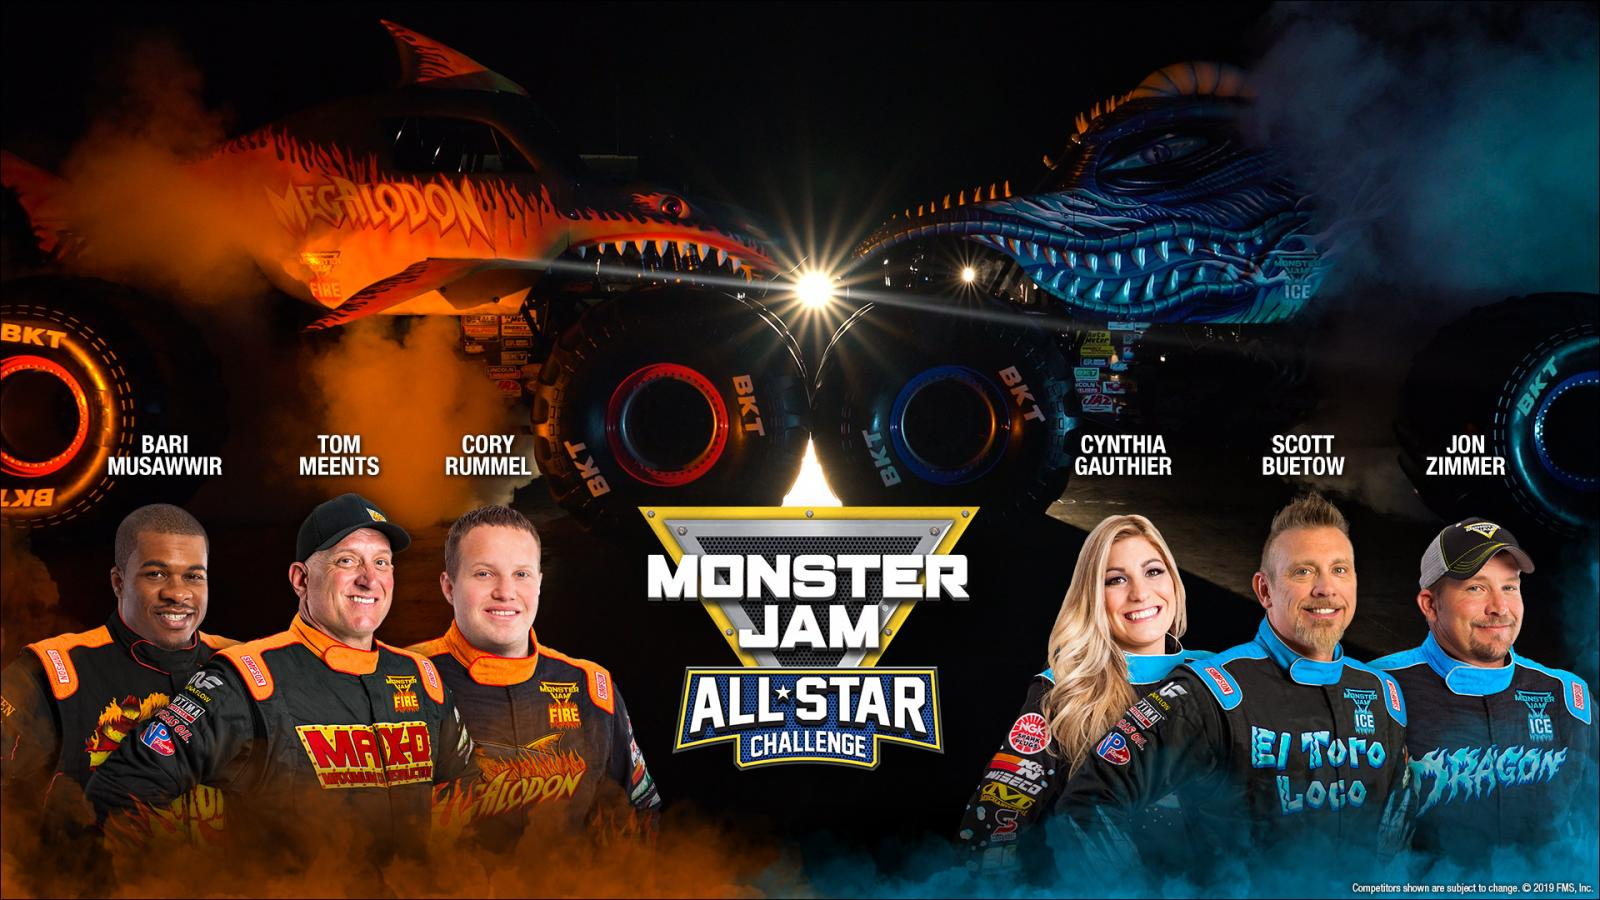 Fan voting on Monsterjam.com to pick the drivers and Monster Jam trucks that will be a part of the Monster Jam All Star Challenge.